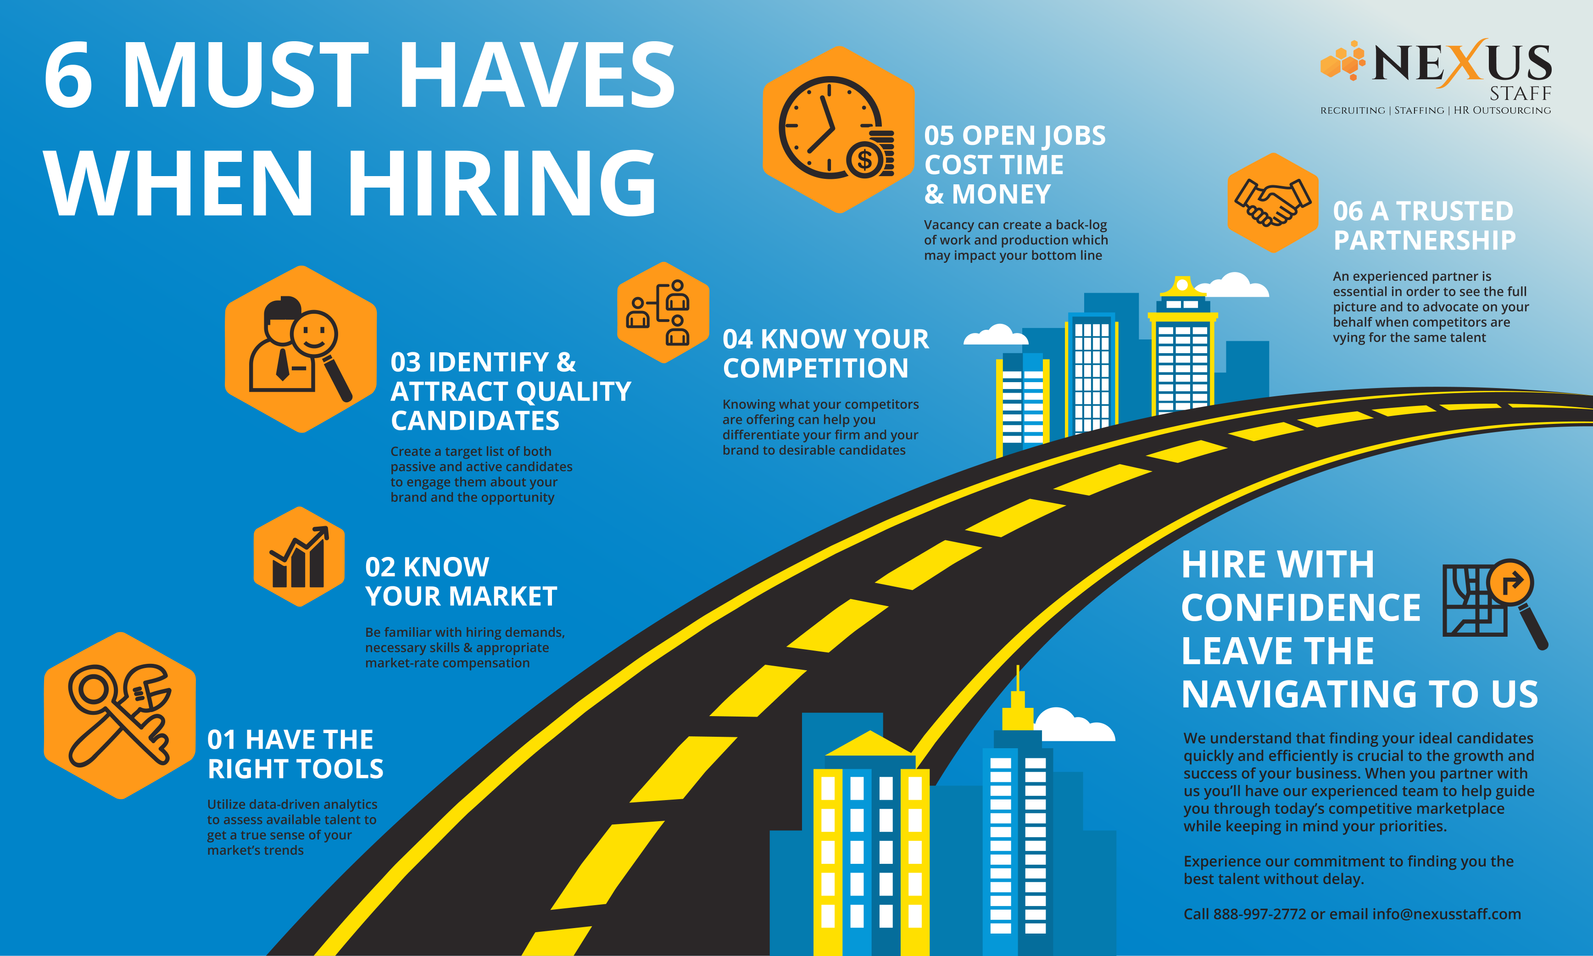 6-Must-Haves-Hiring_infographic-oct8.png